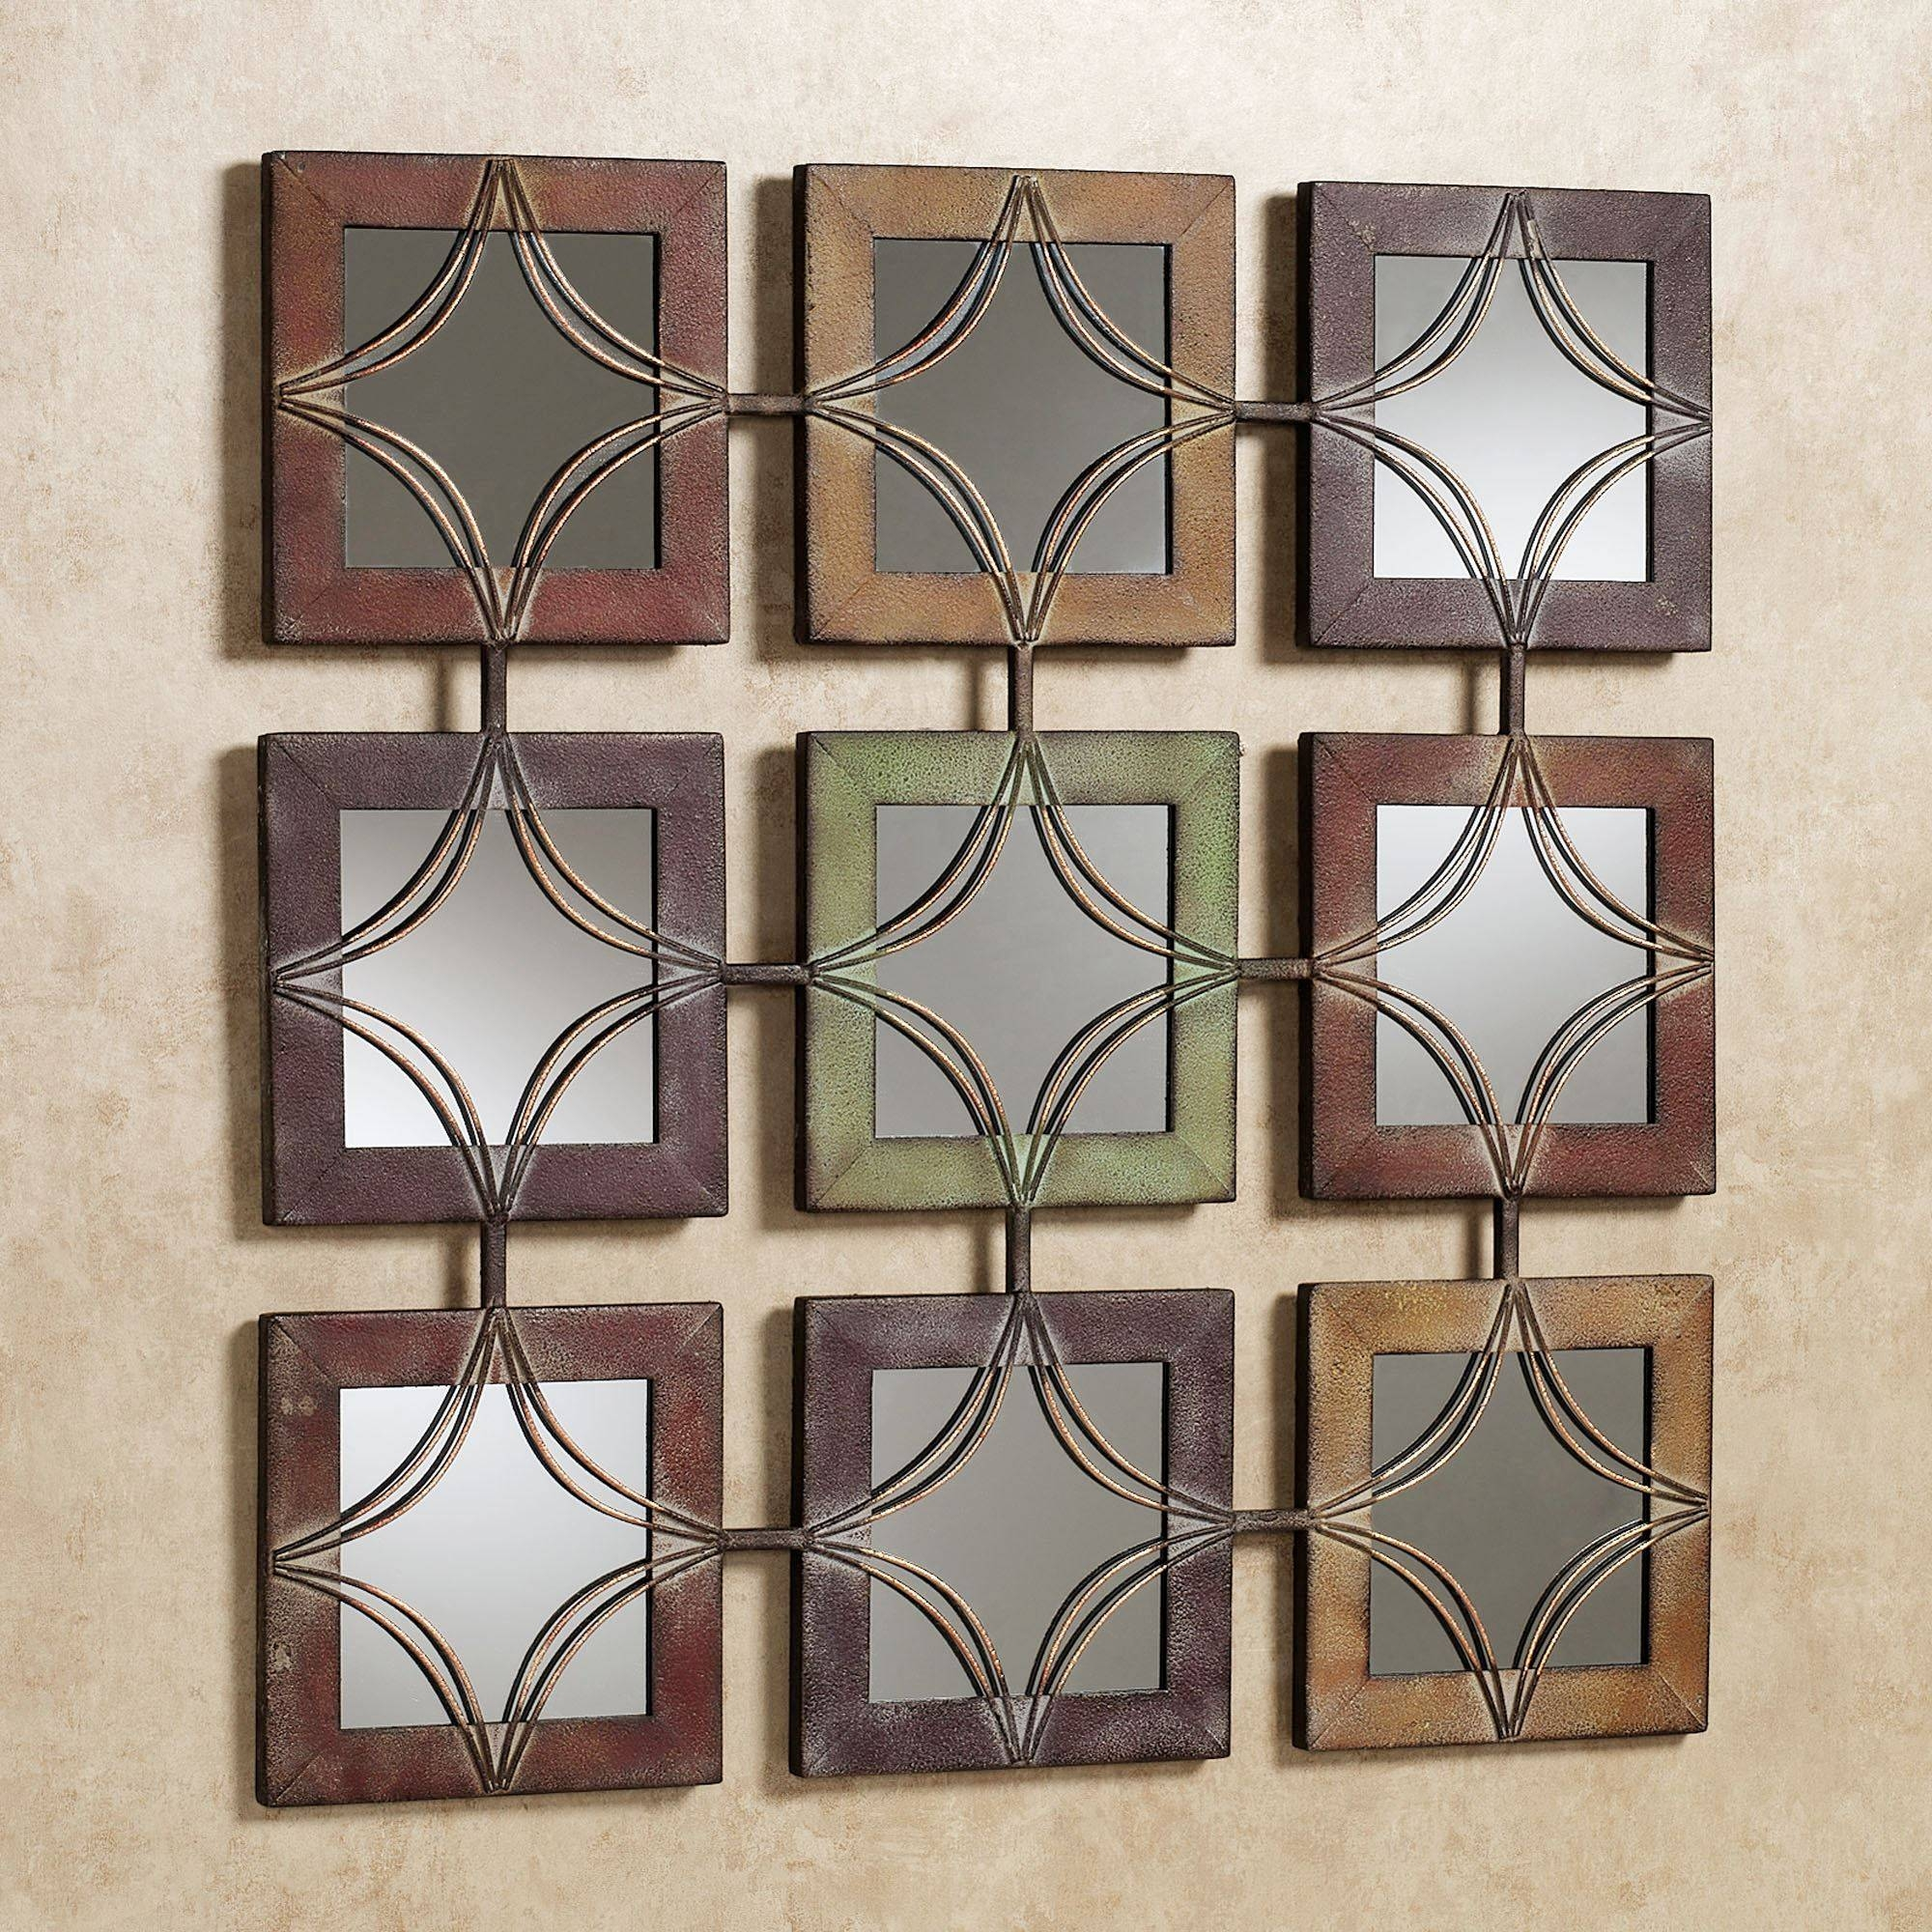 Domini Mirrored Metal Wall Art Inside Most Popular Metal Wall Art Decor (View 8 of 20)